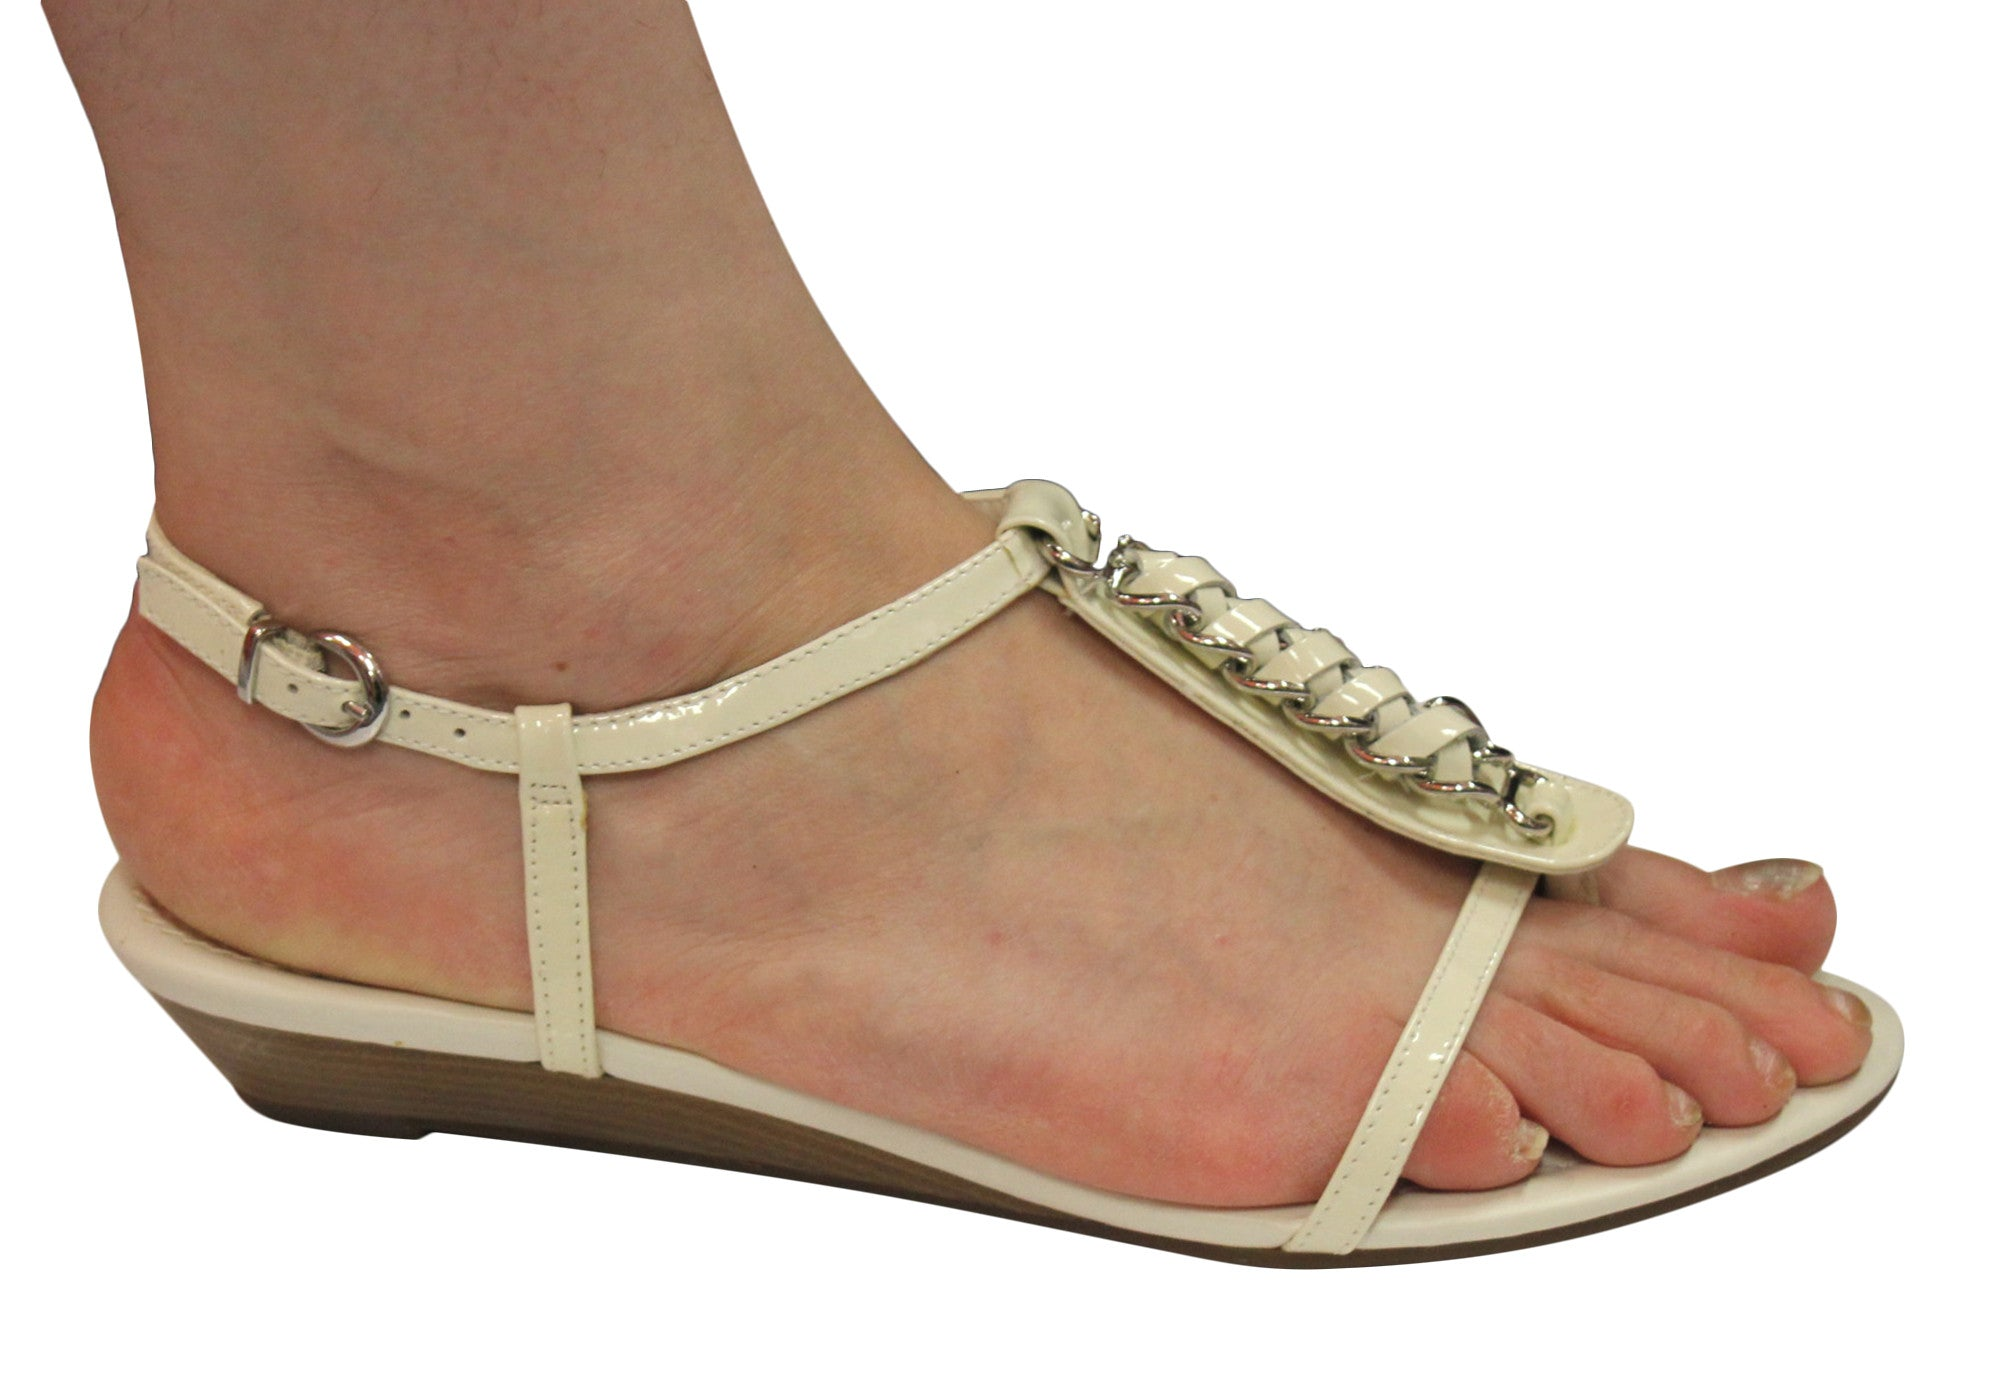 Clarks Santa Cruz Womens Leather Fashion Sandals